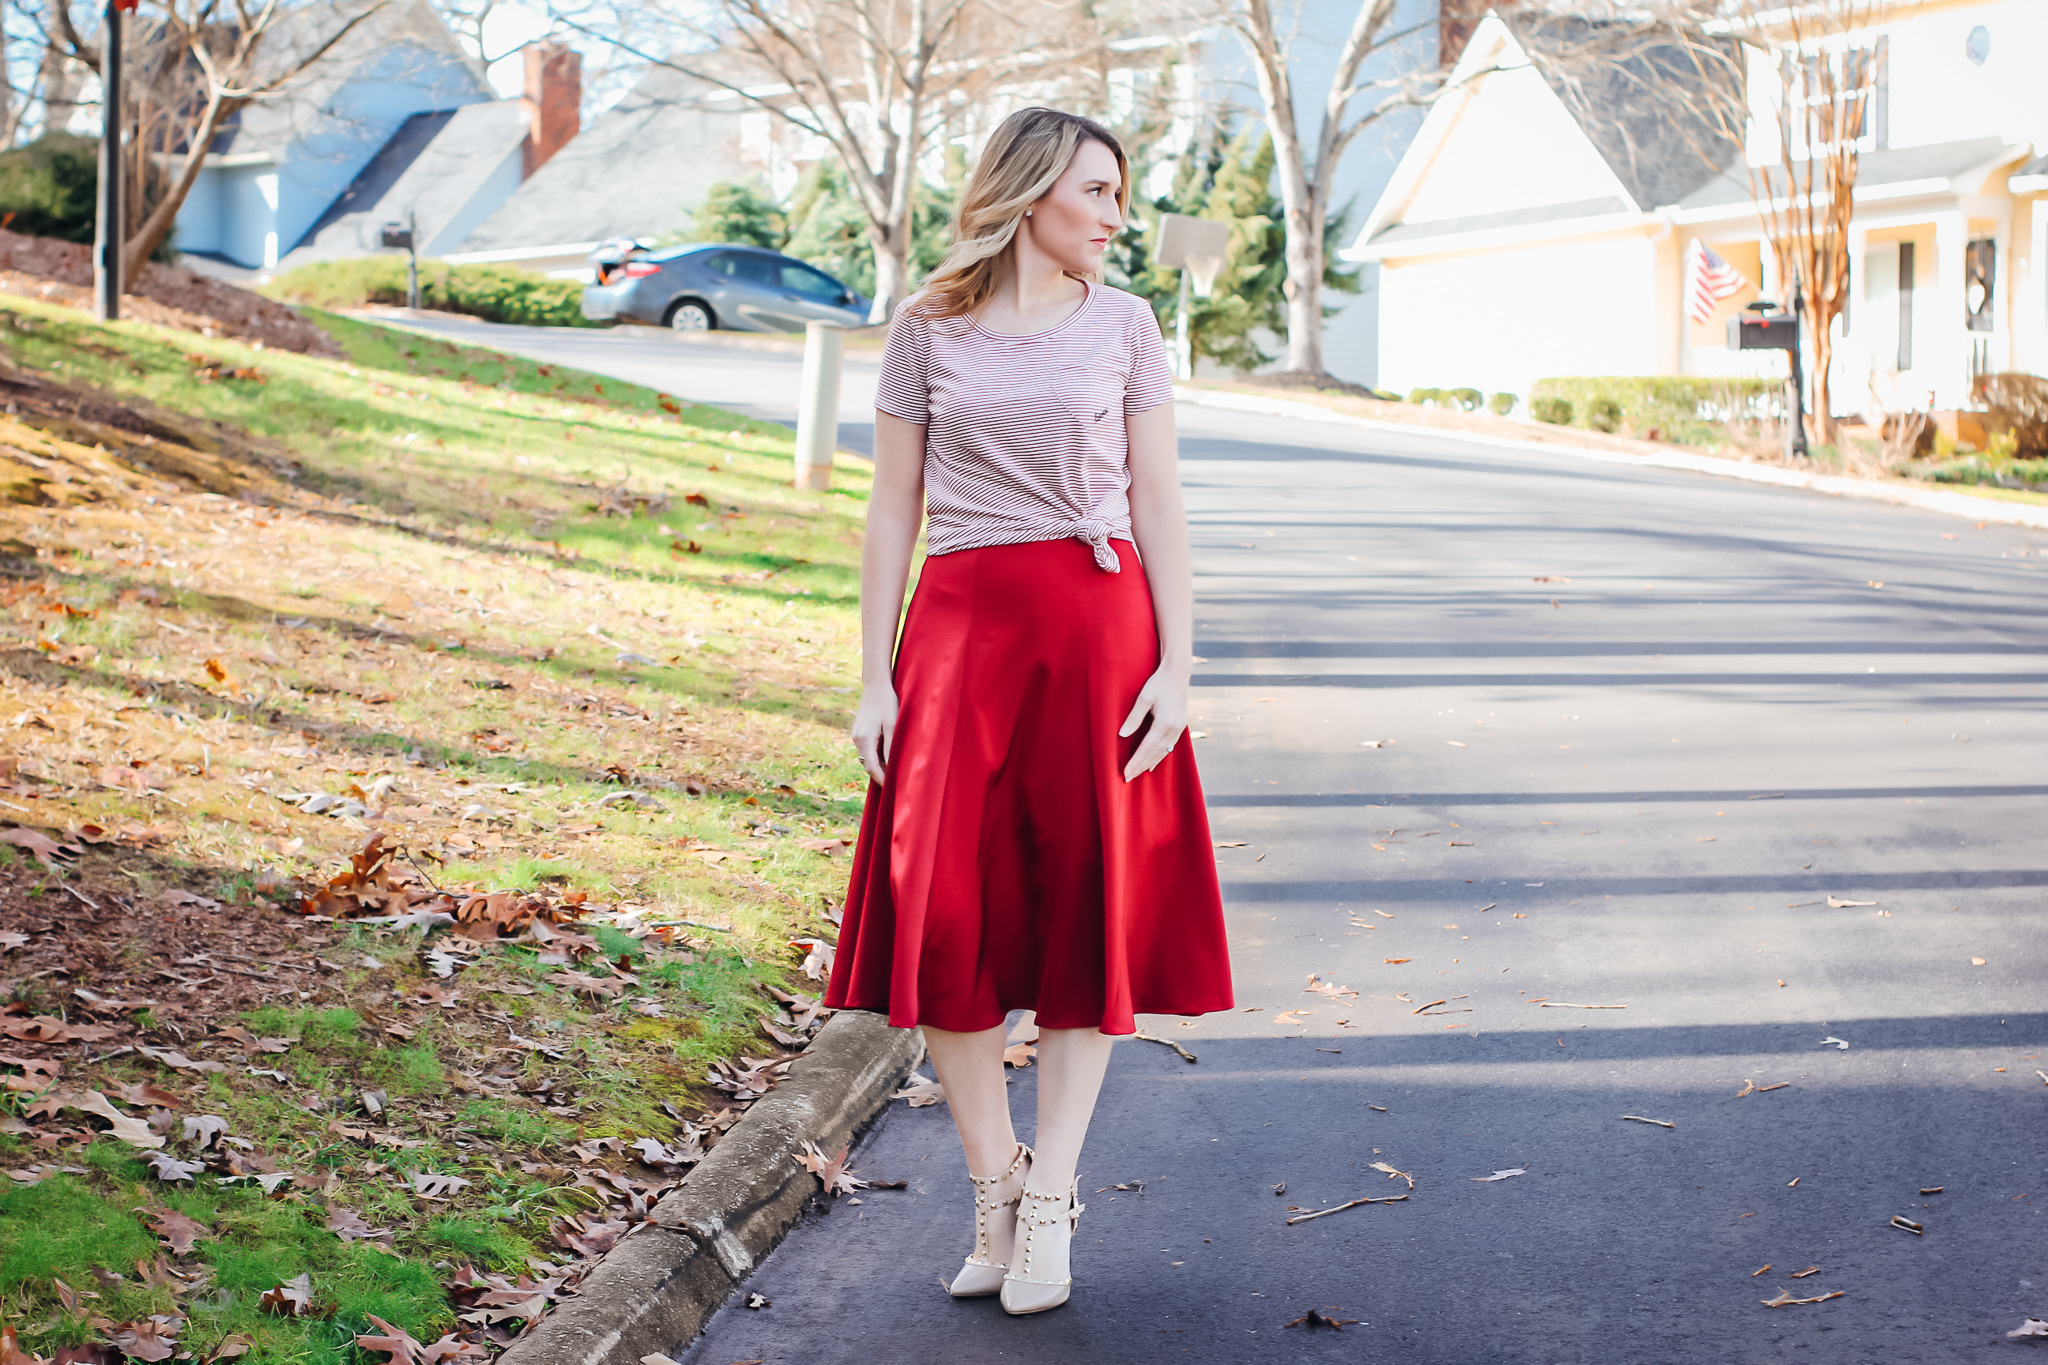 Red Satin Midi Skirt with Graphic Love Tee